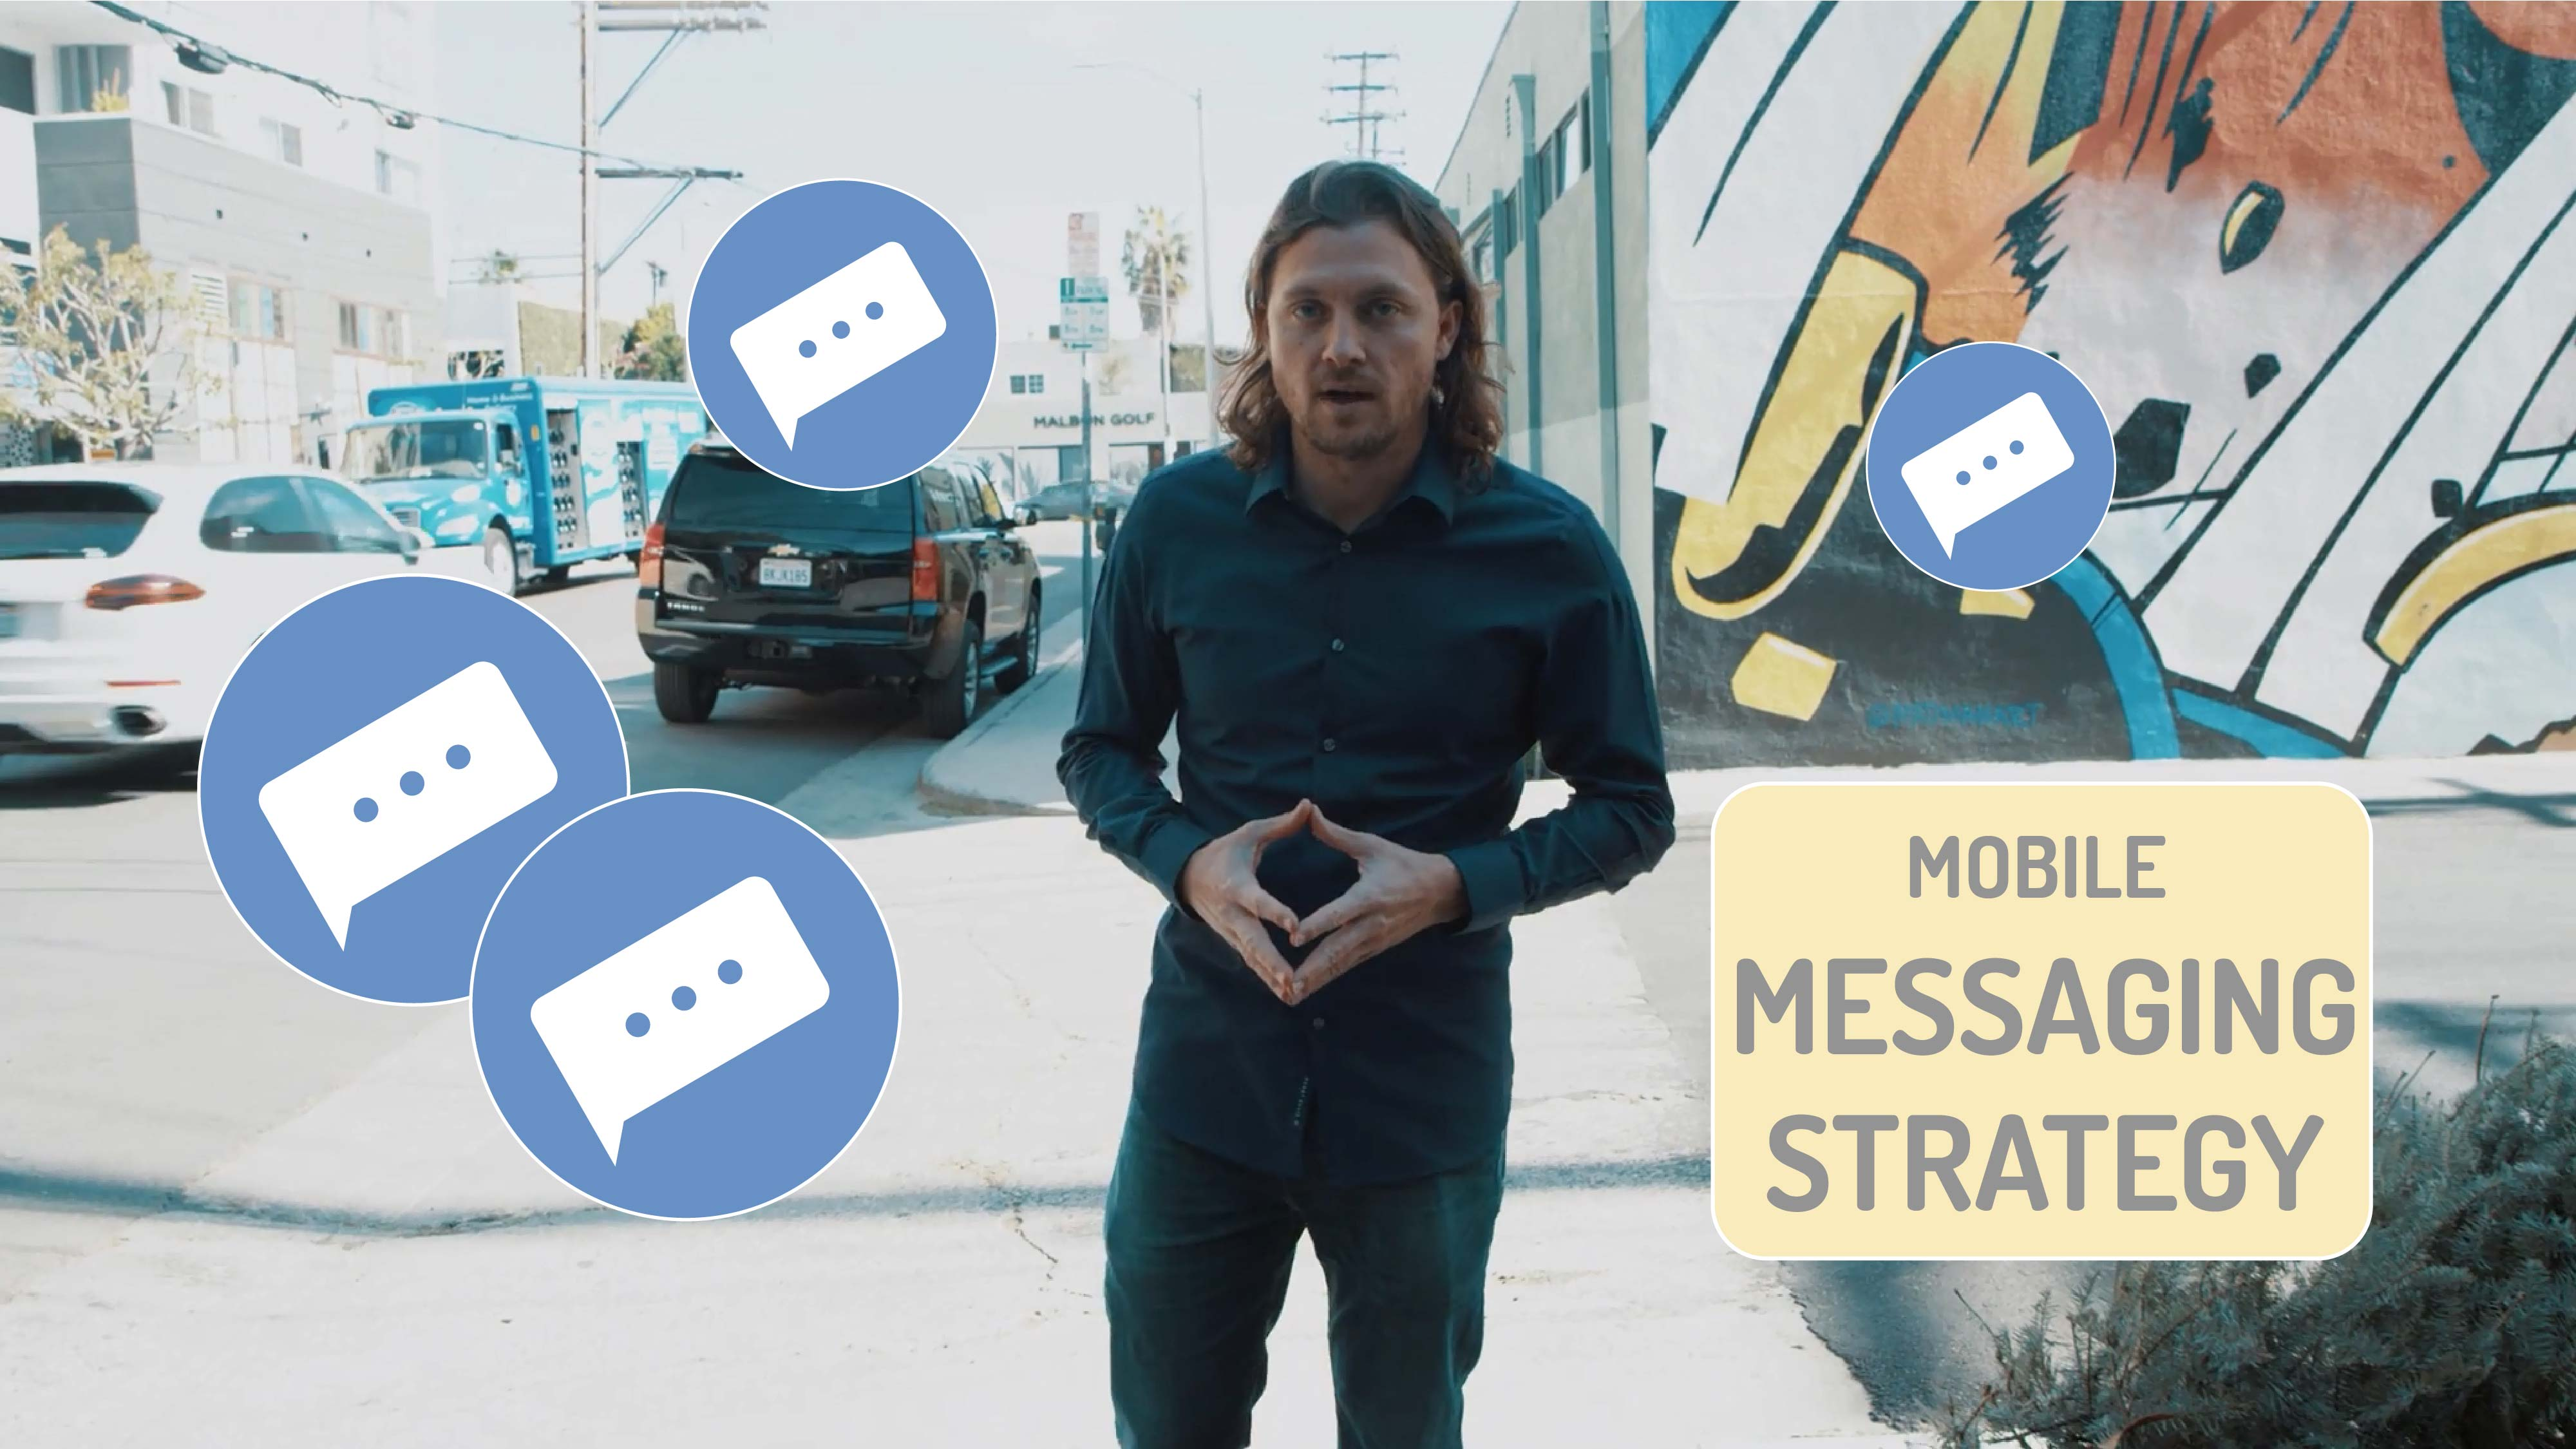 Mobile Messaging Strategy   Marketing